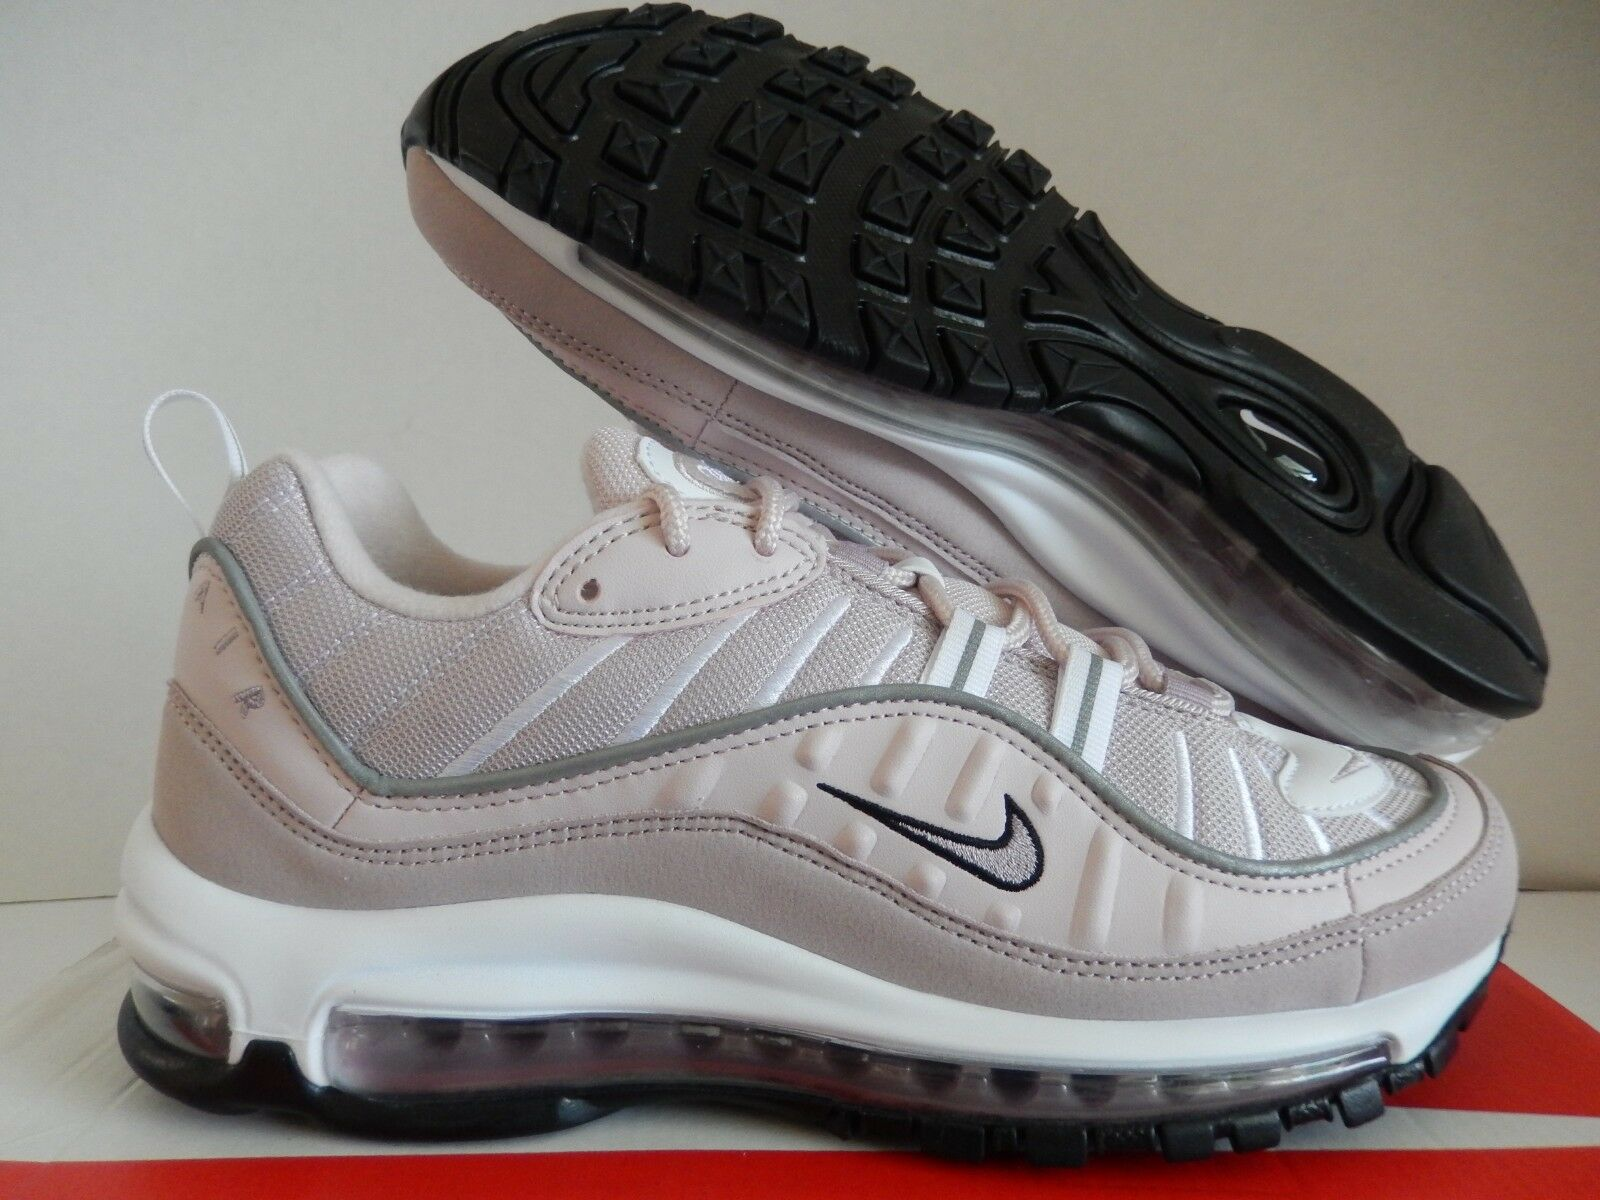 Wmns nike air max 97 a rose pink-elemental [ah6799-600] rose sz 9 [ah6799-600] pink-elemental 1d84a1